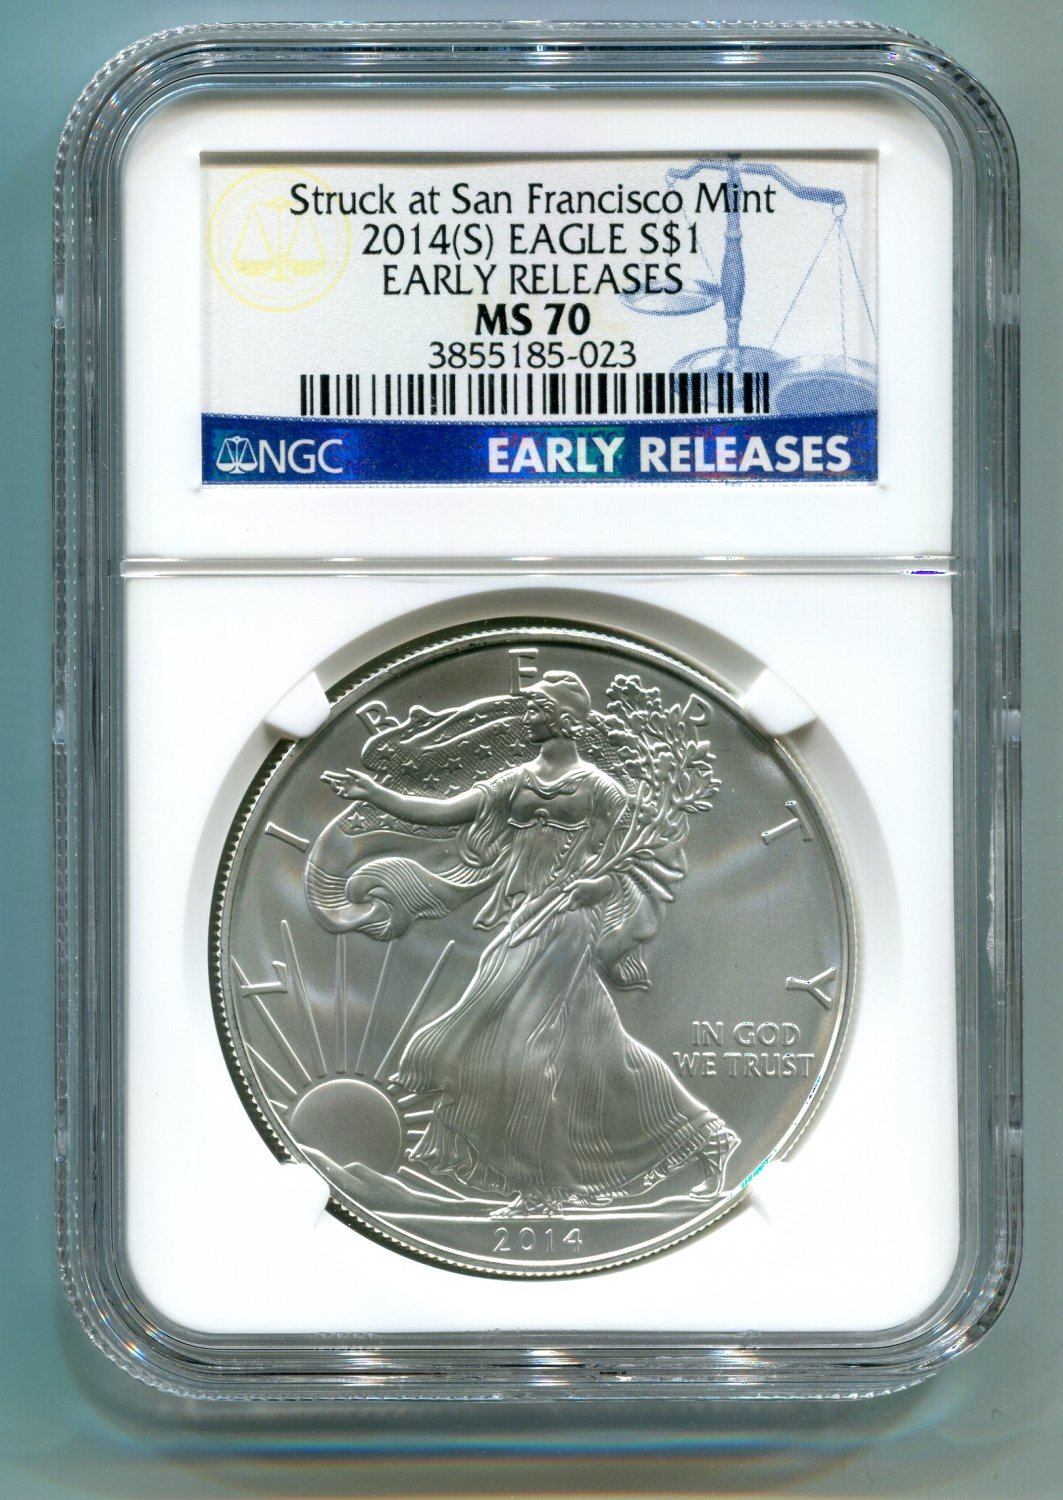 2014(S) SILVER EAGLE NGC MS 70 STRUCK AT SAN FRANCISCO MINT EARLY RELEASE